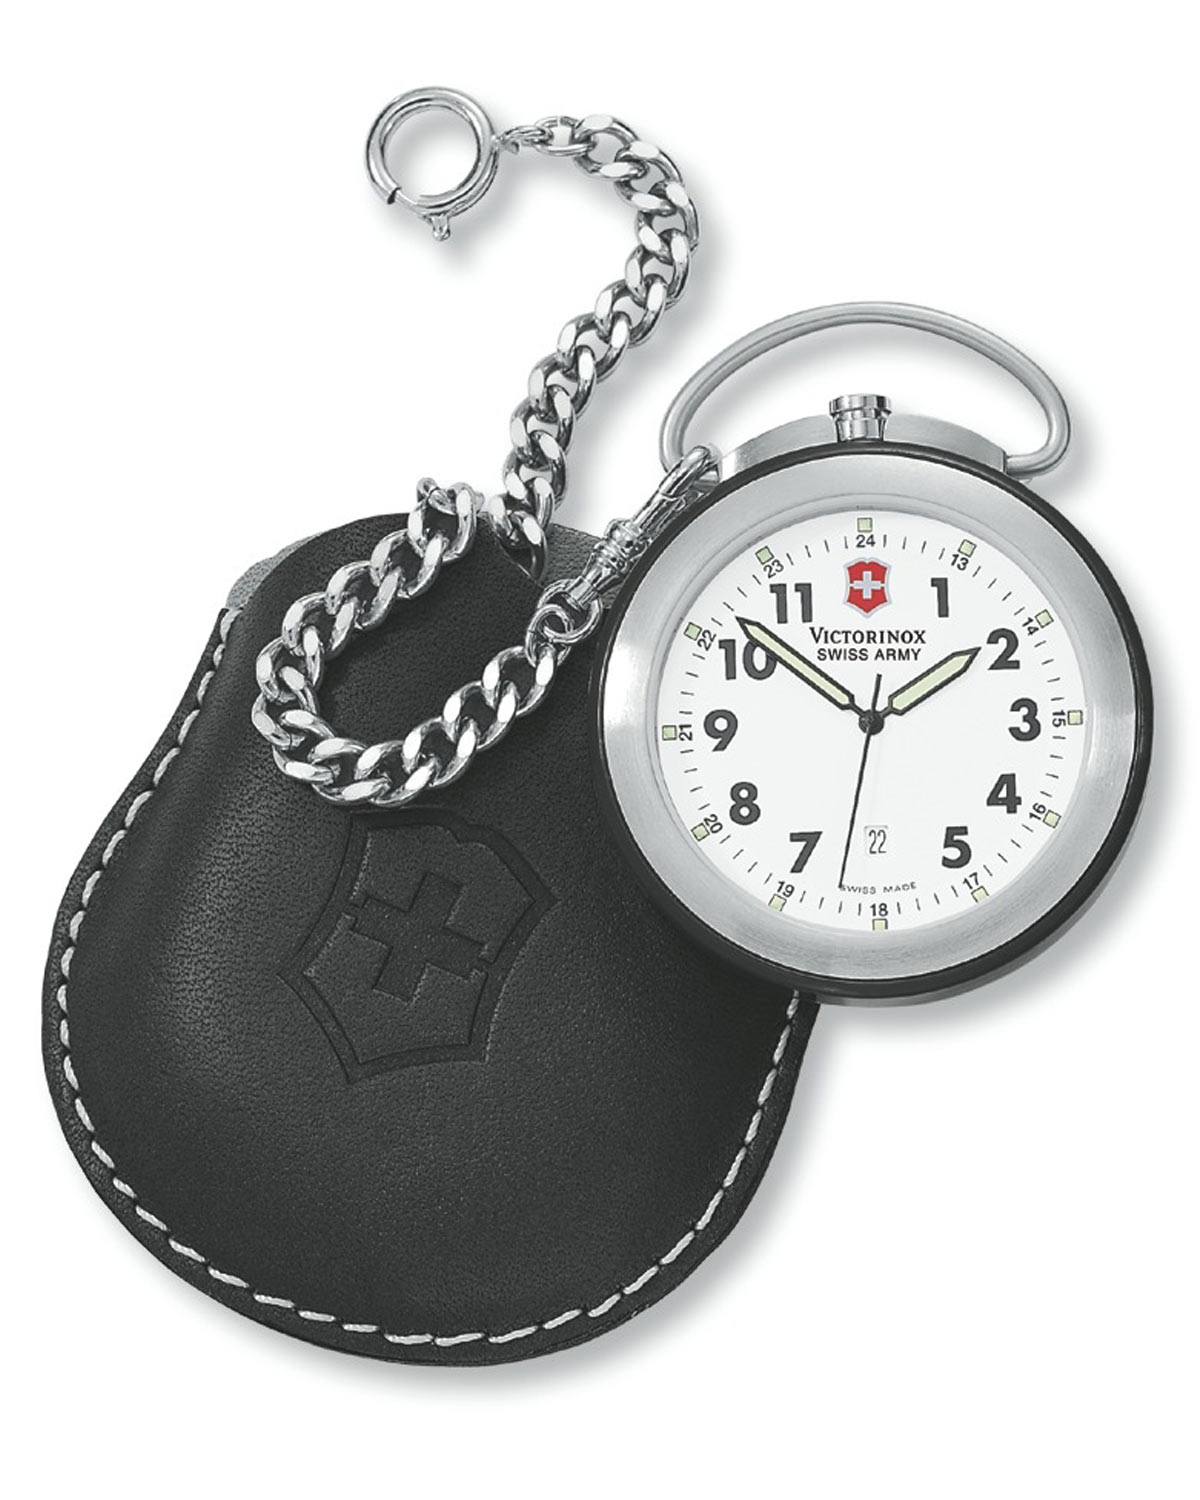 victorinox swiss army pocket with chain and leather pouch